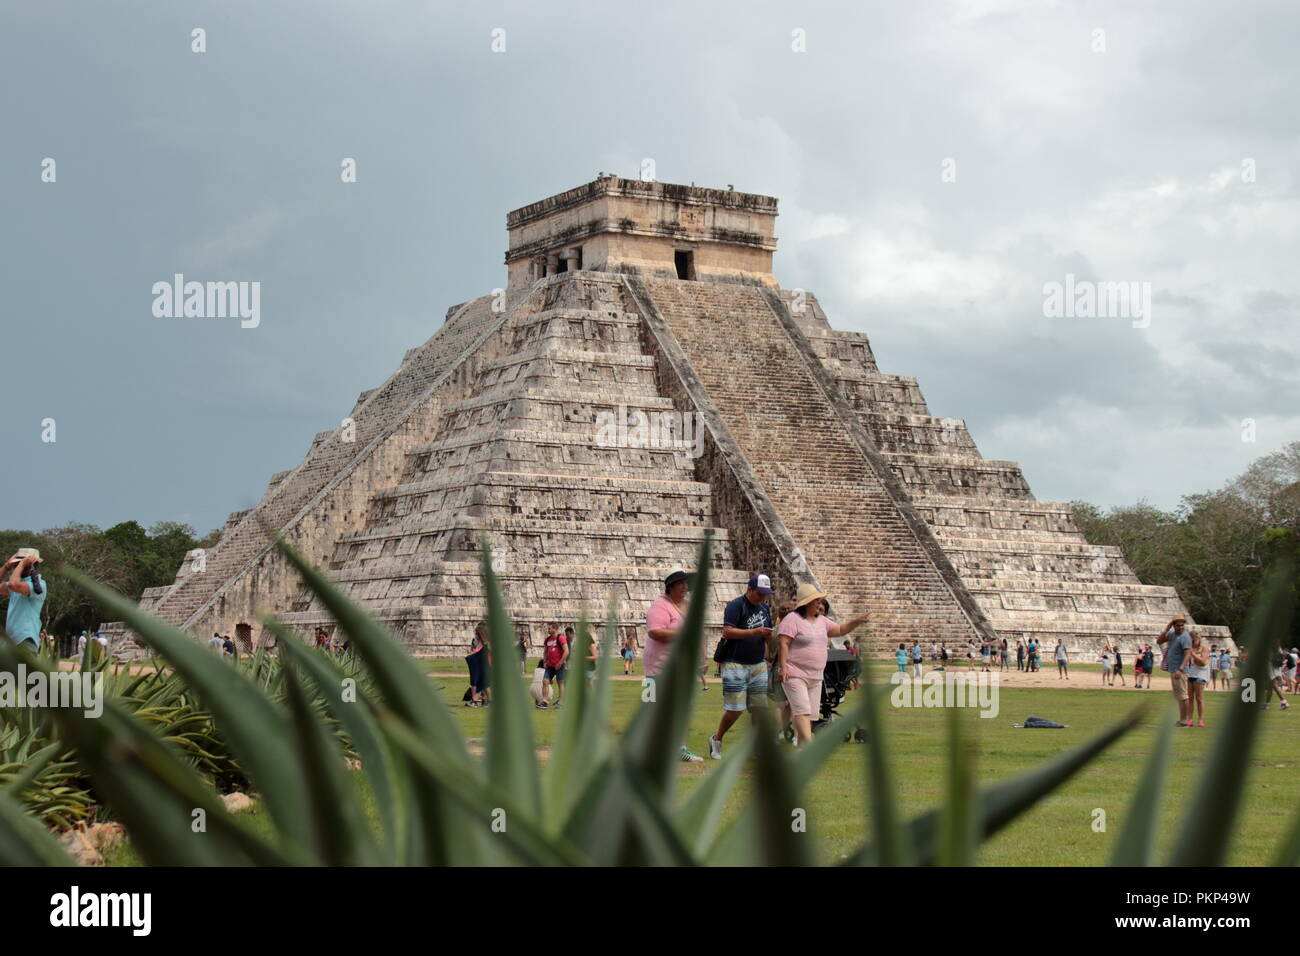 archaeological site of chechen Itzá city state of the Maya - Stock Image